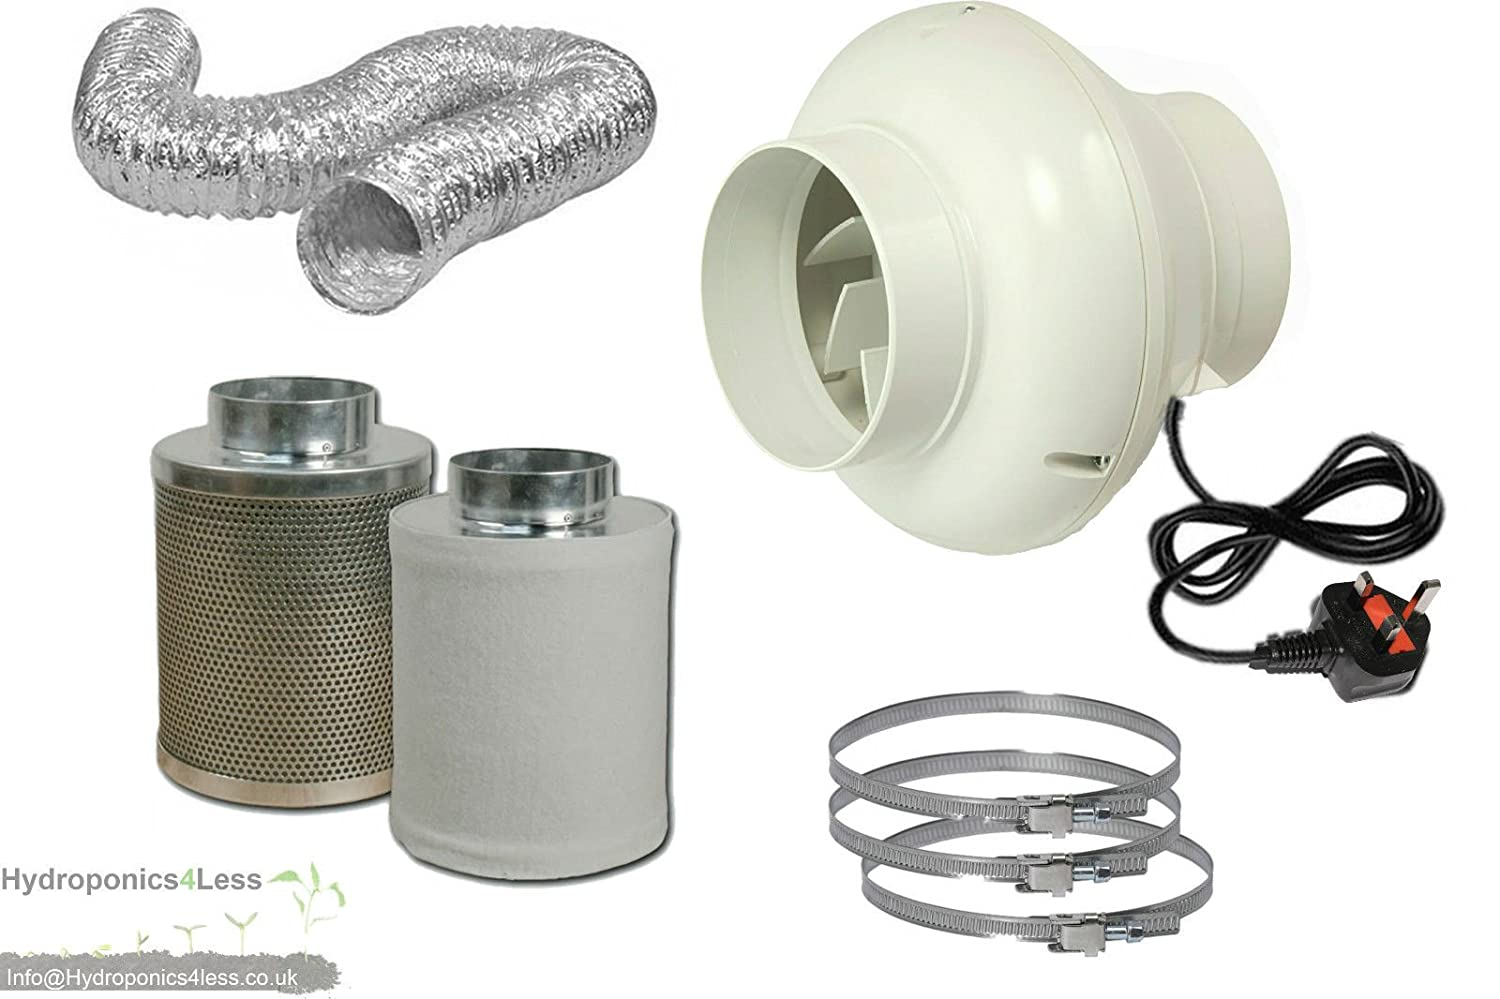 4' In Line Fan Carbon Filter & Duct Kit Hydroponic Grow Room Tent Ventilation hydroponics4less